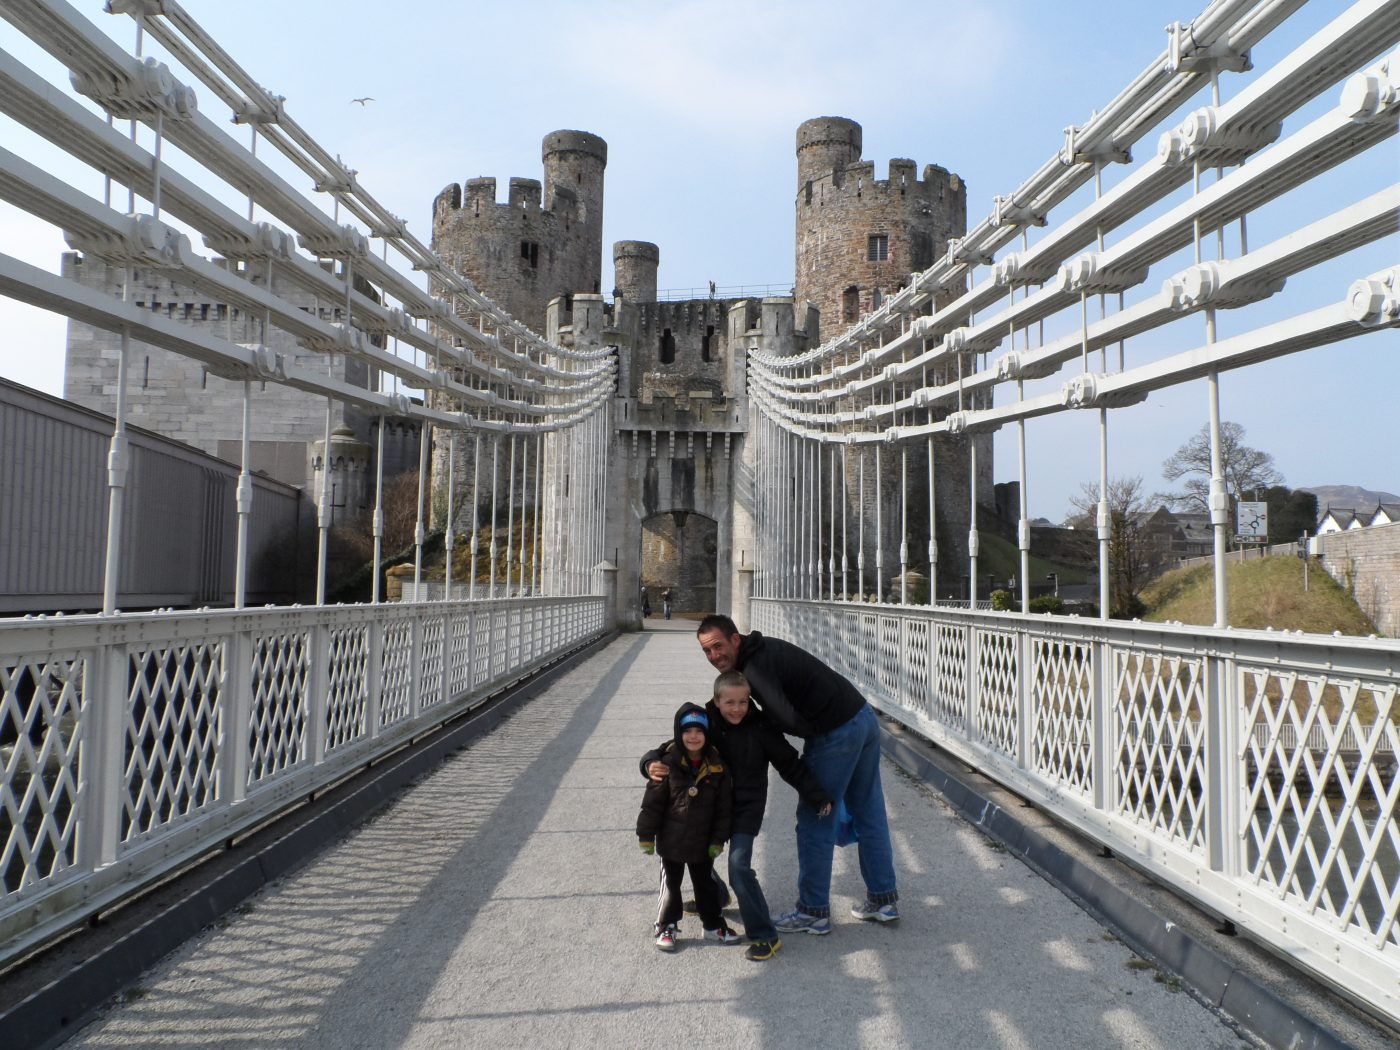 What to see in Conwy, Wales